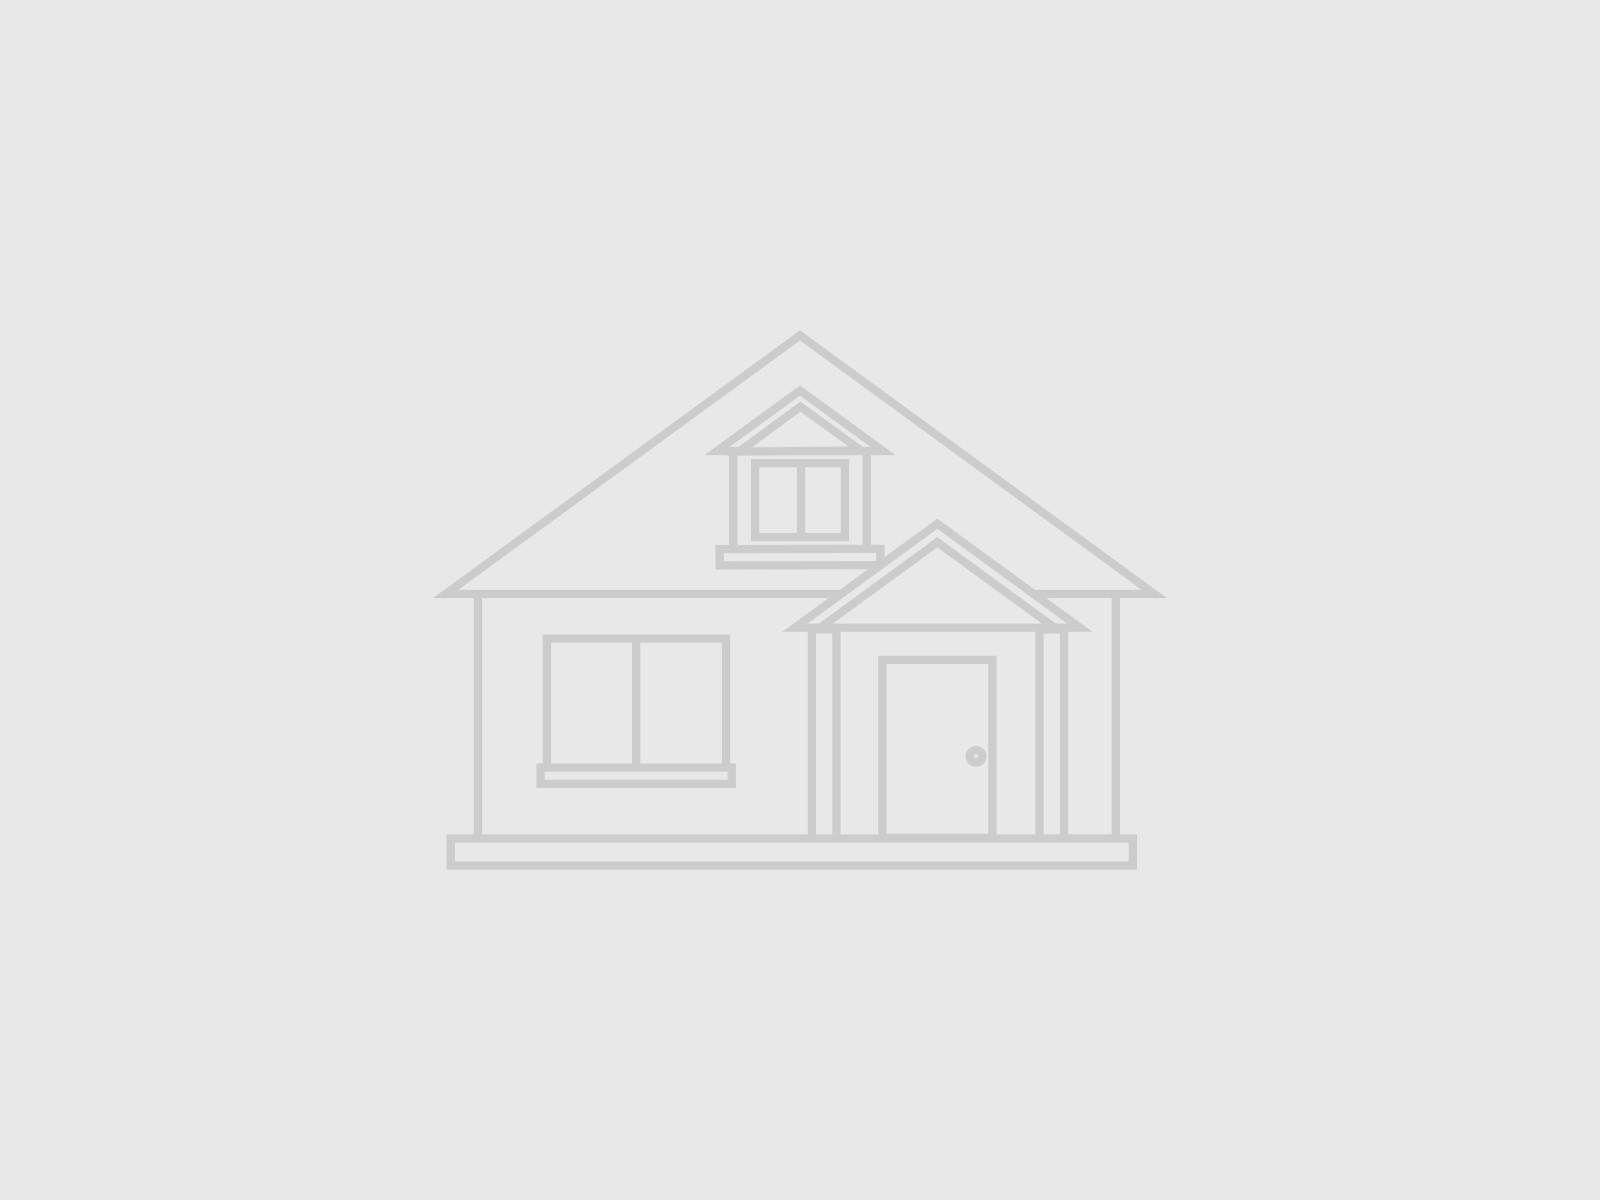 Single Family Homes for Sale at 280 Old Farm Road Northfield, Illinois 60093 United States